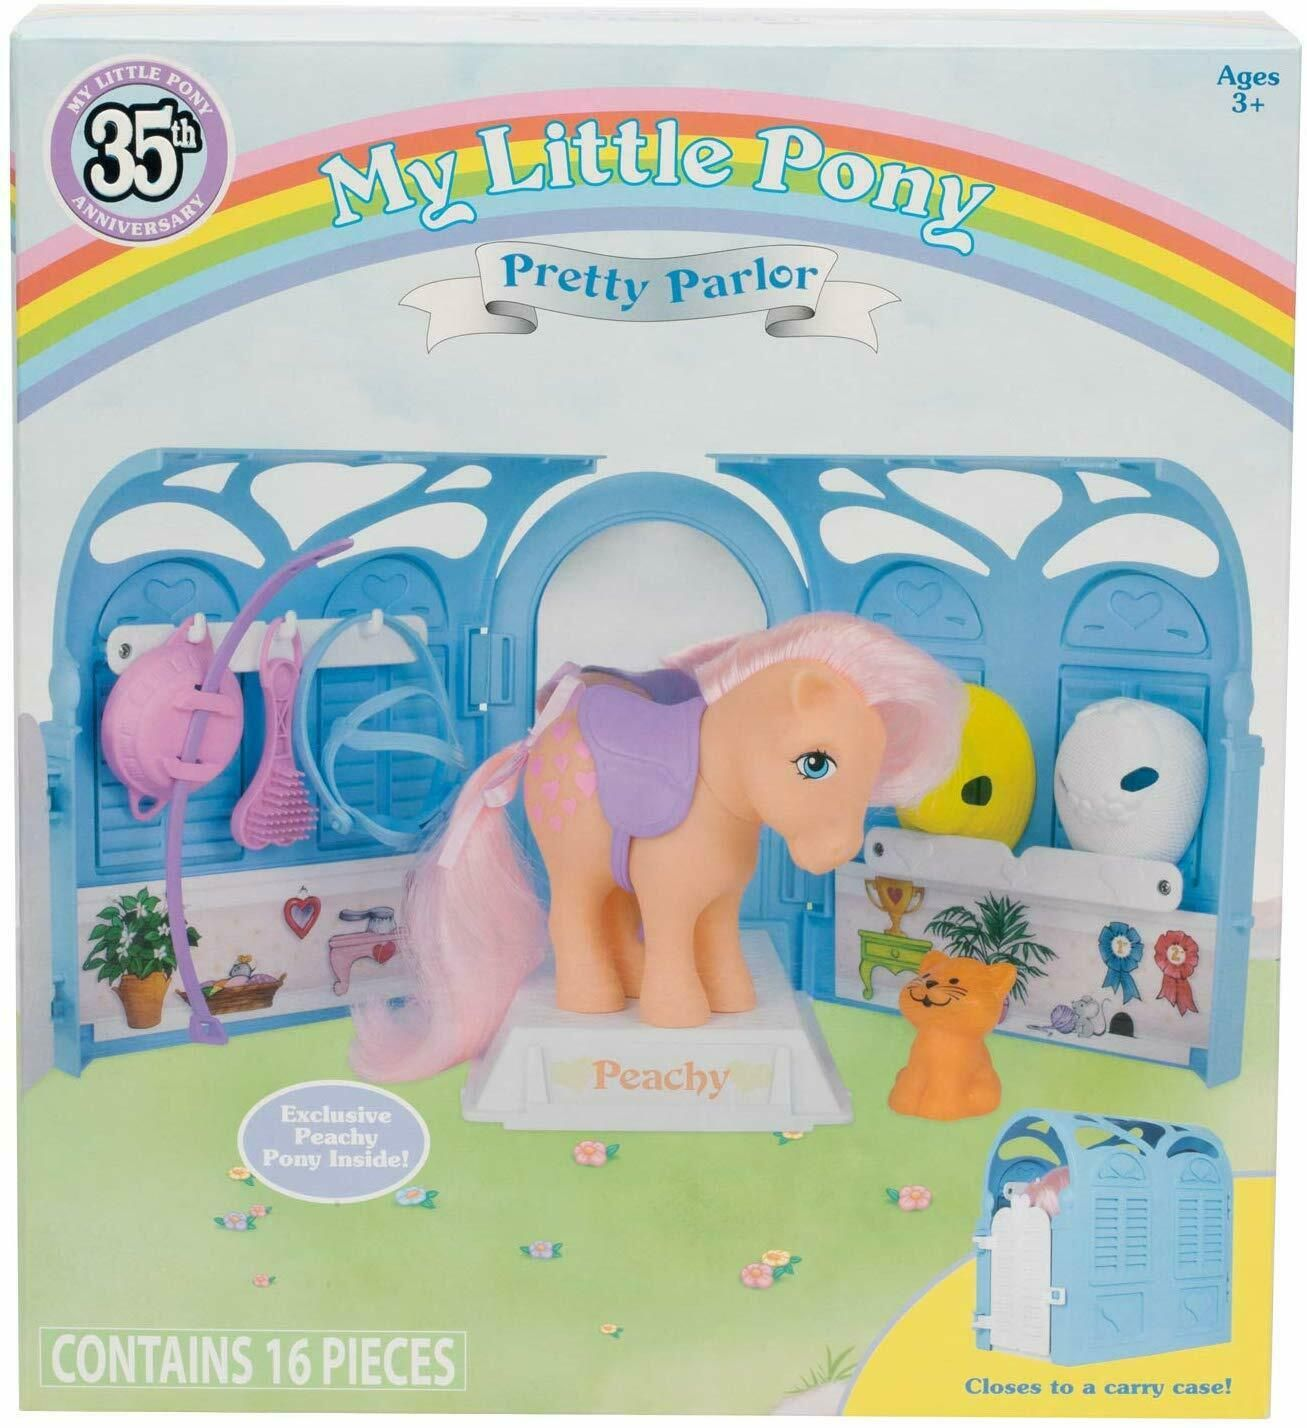 My Little Pony Retro 35th Anniversaire Pretty Parlour Playset Includes Peachy